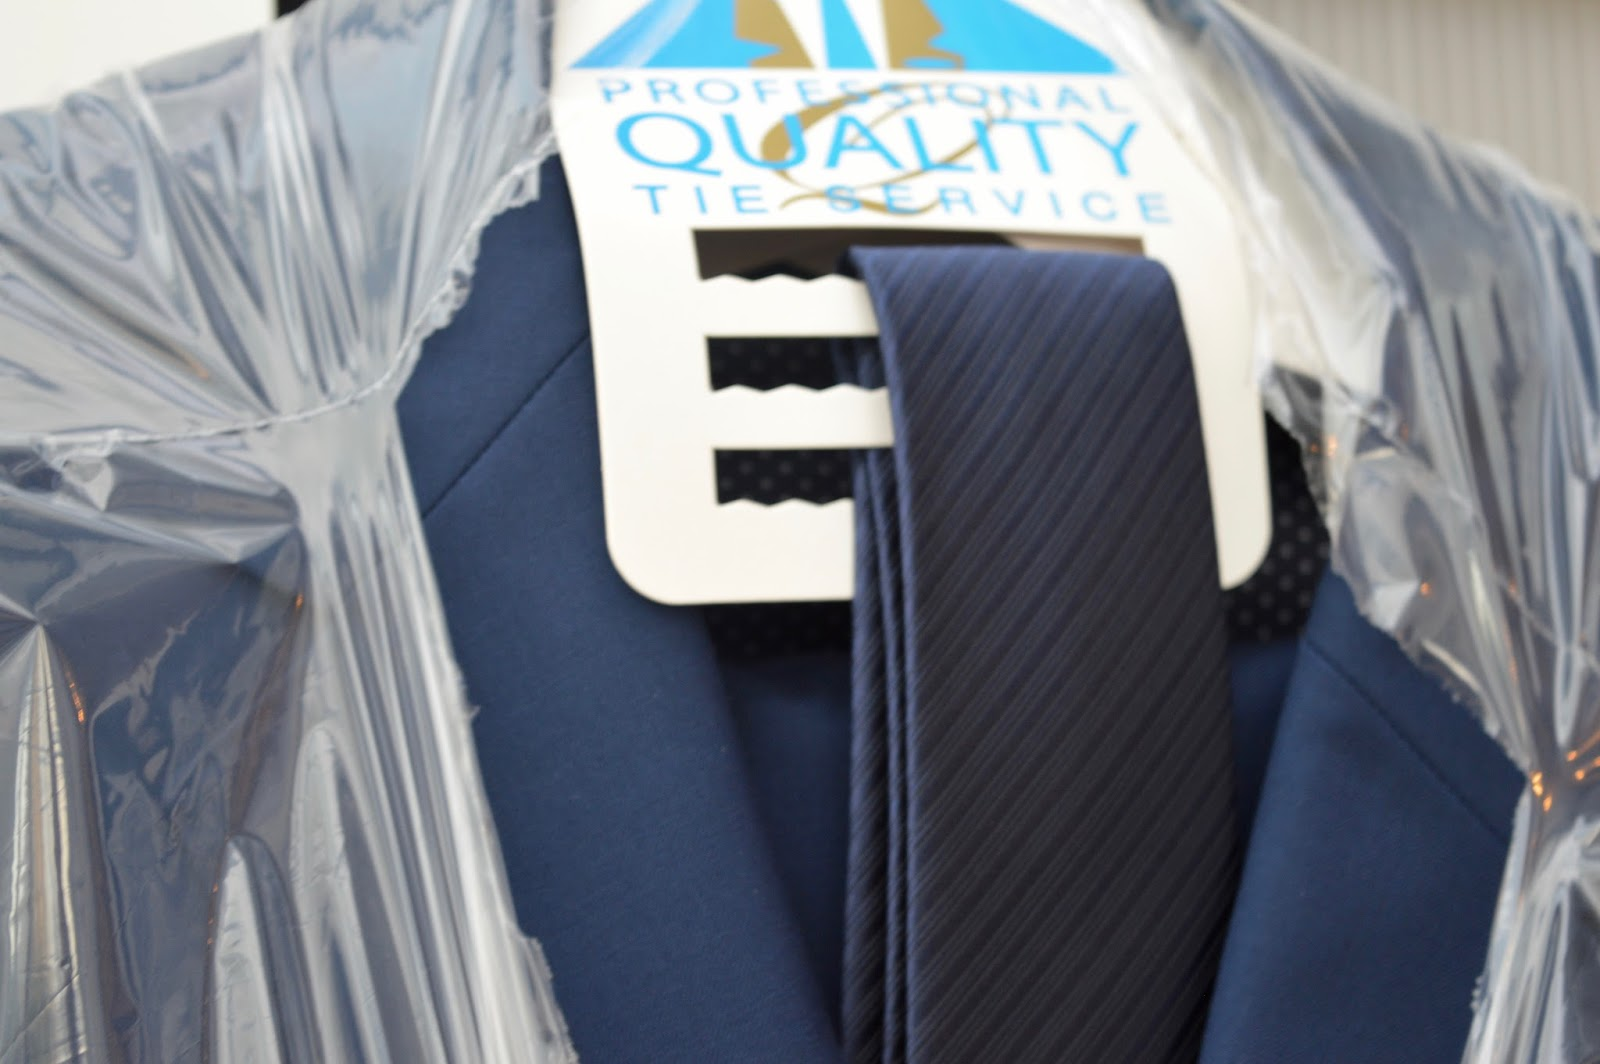 The Laundry Co - North East Dry Cleaning and Laundry collected from your door. Order and pay online. A review and giveaway.